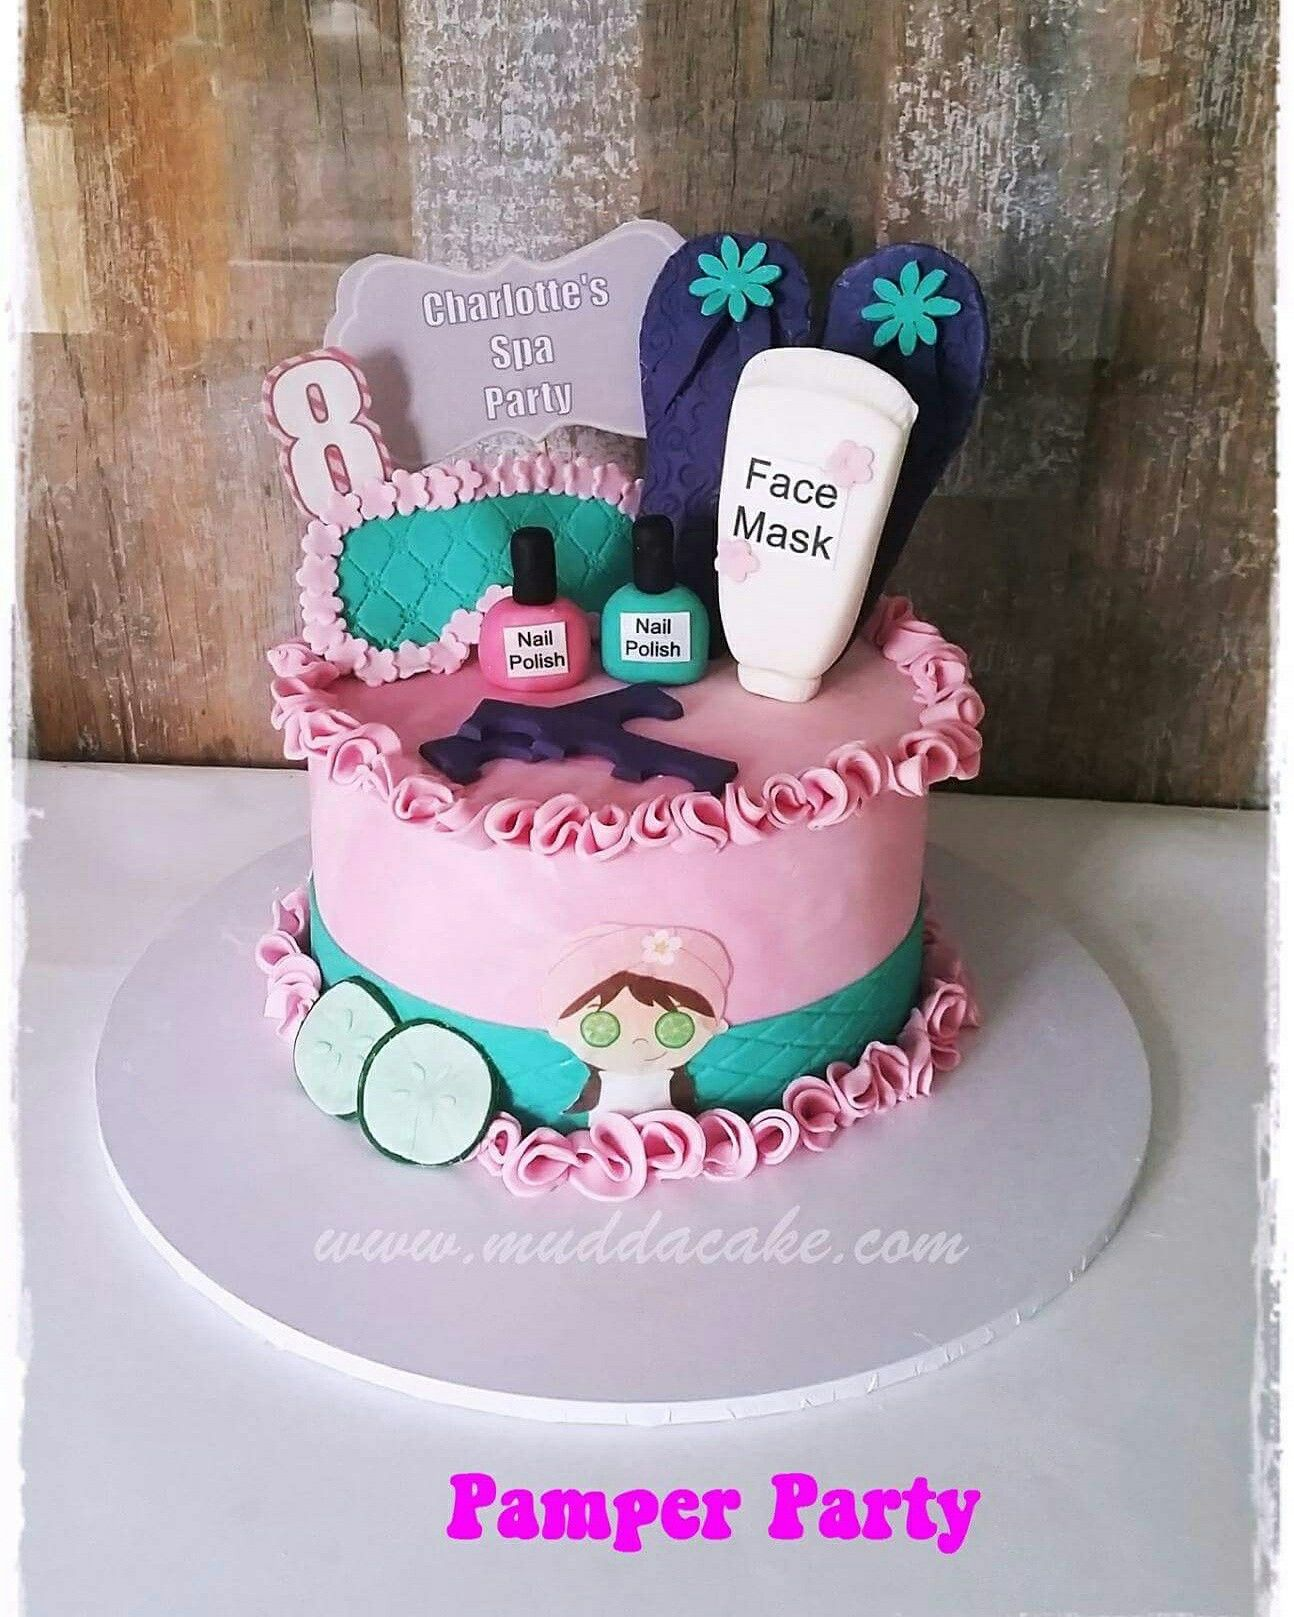 Cake Ideas For Pamper Party